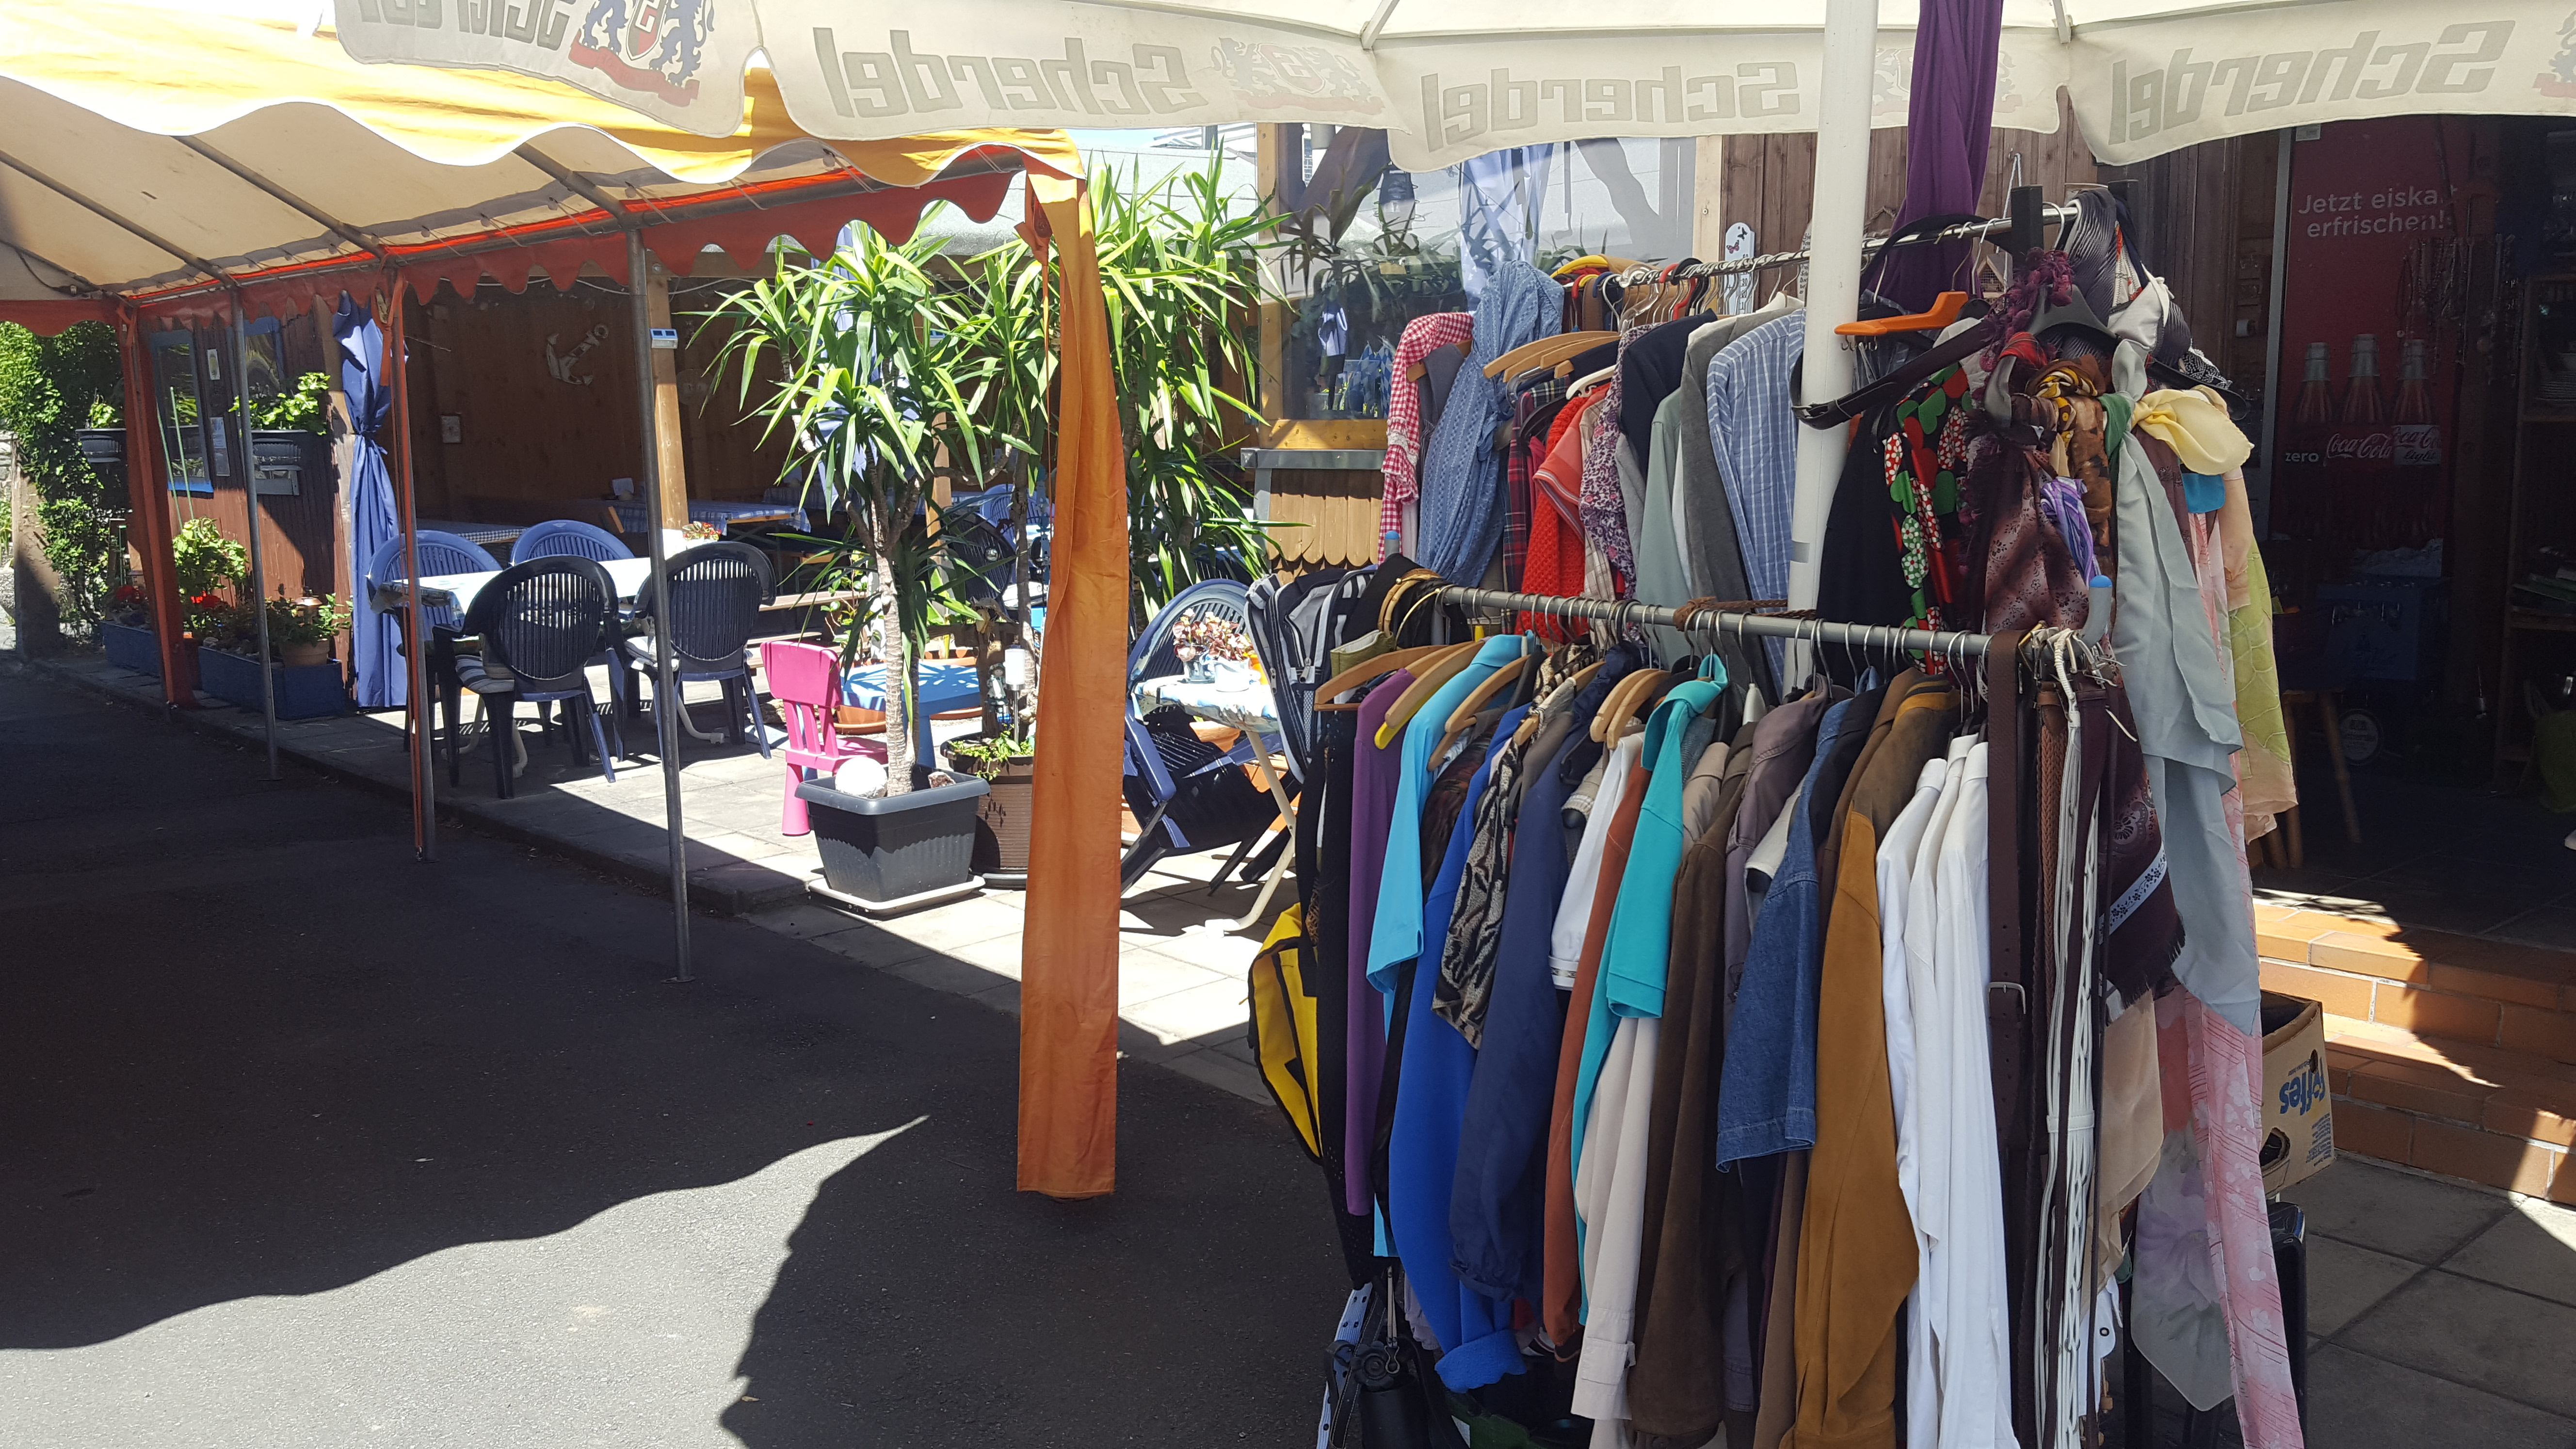 The flea market stands next to our beergarden